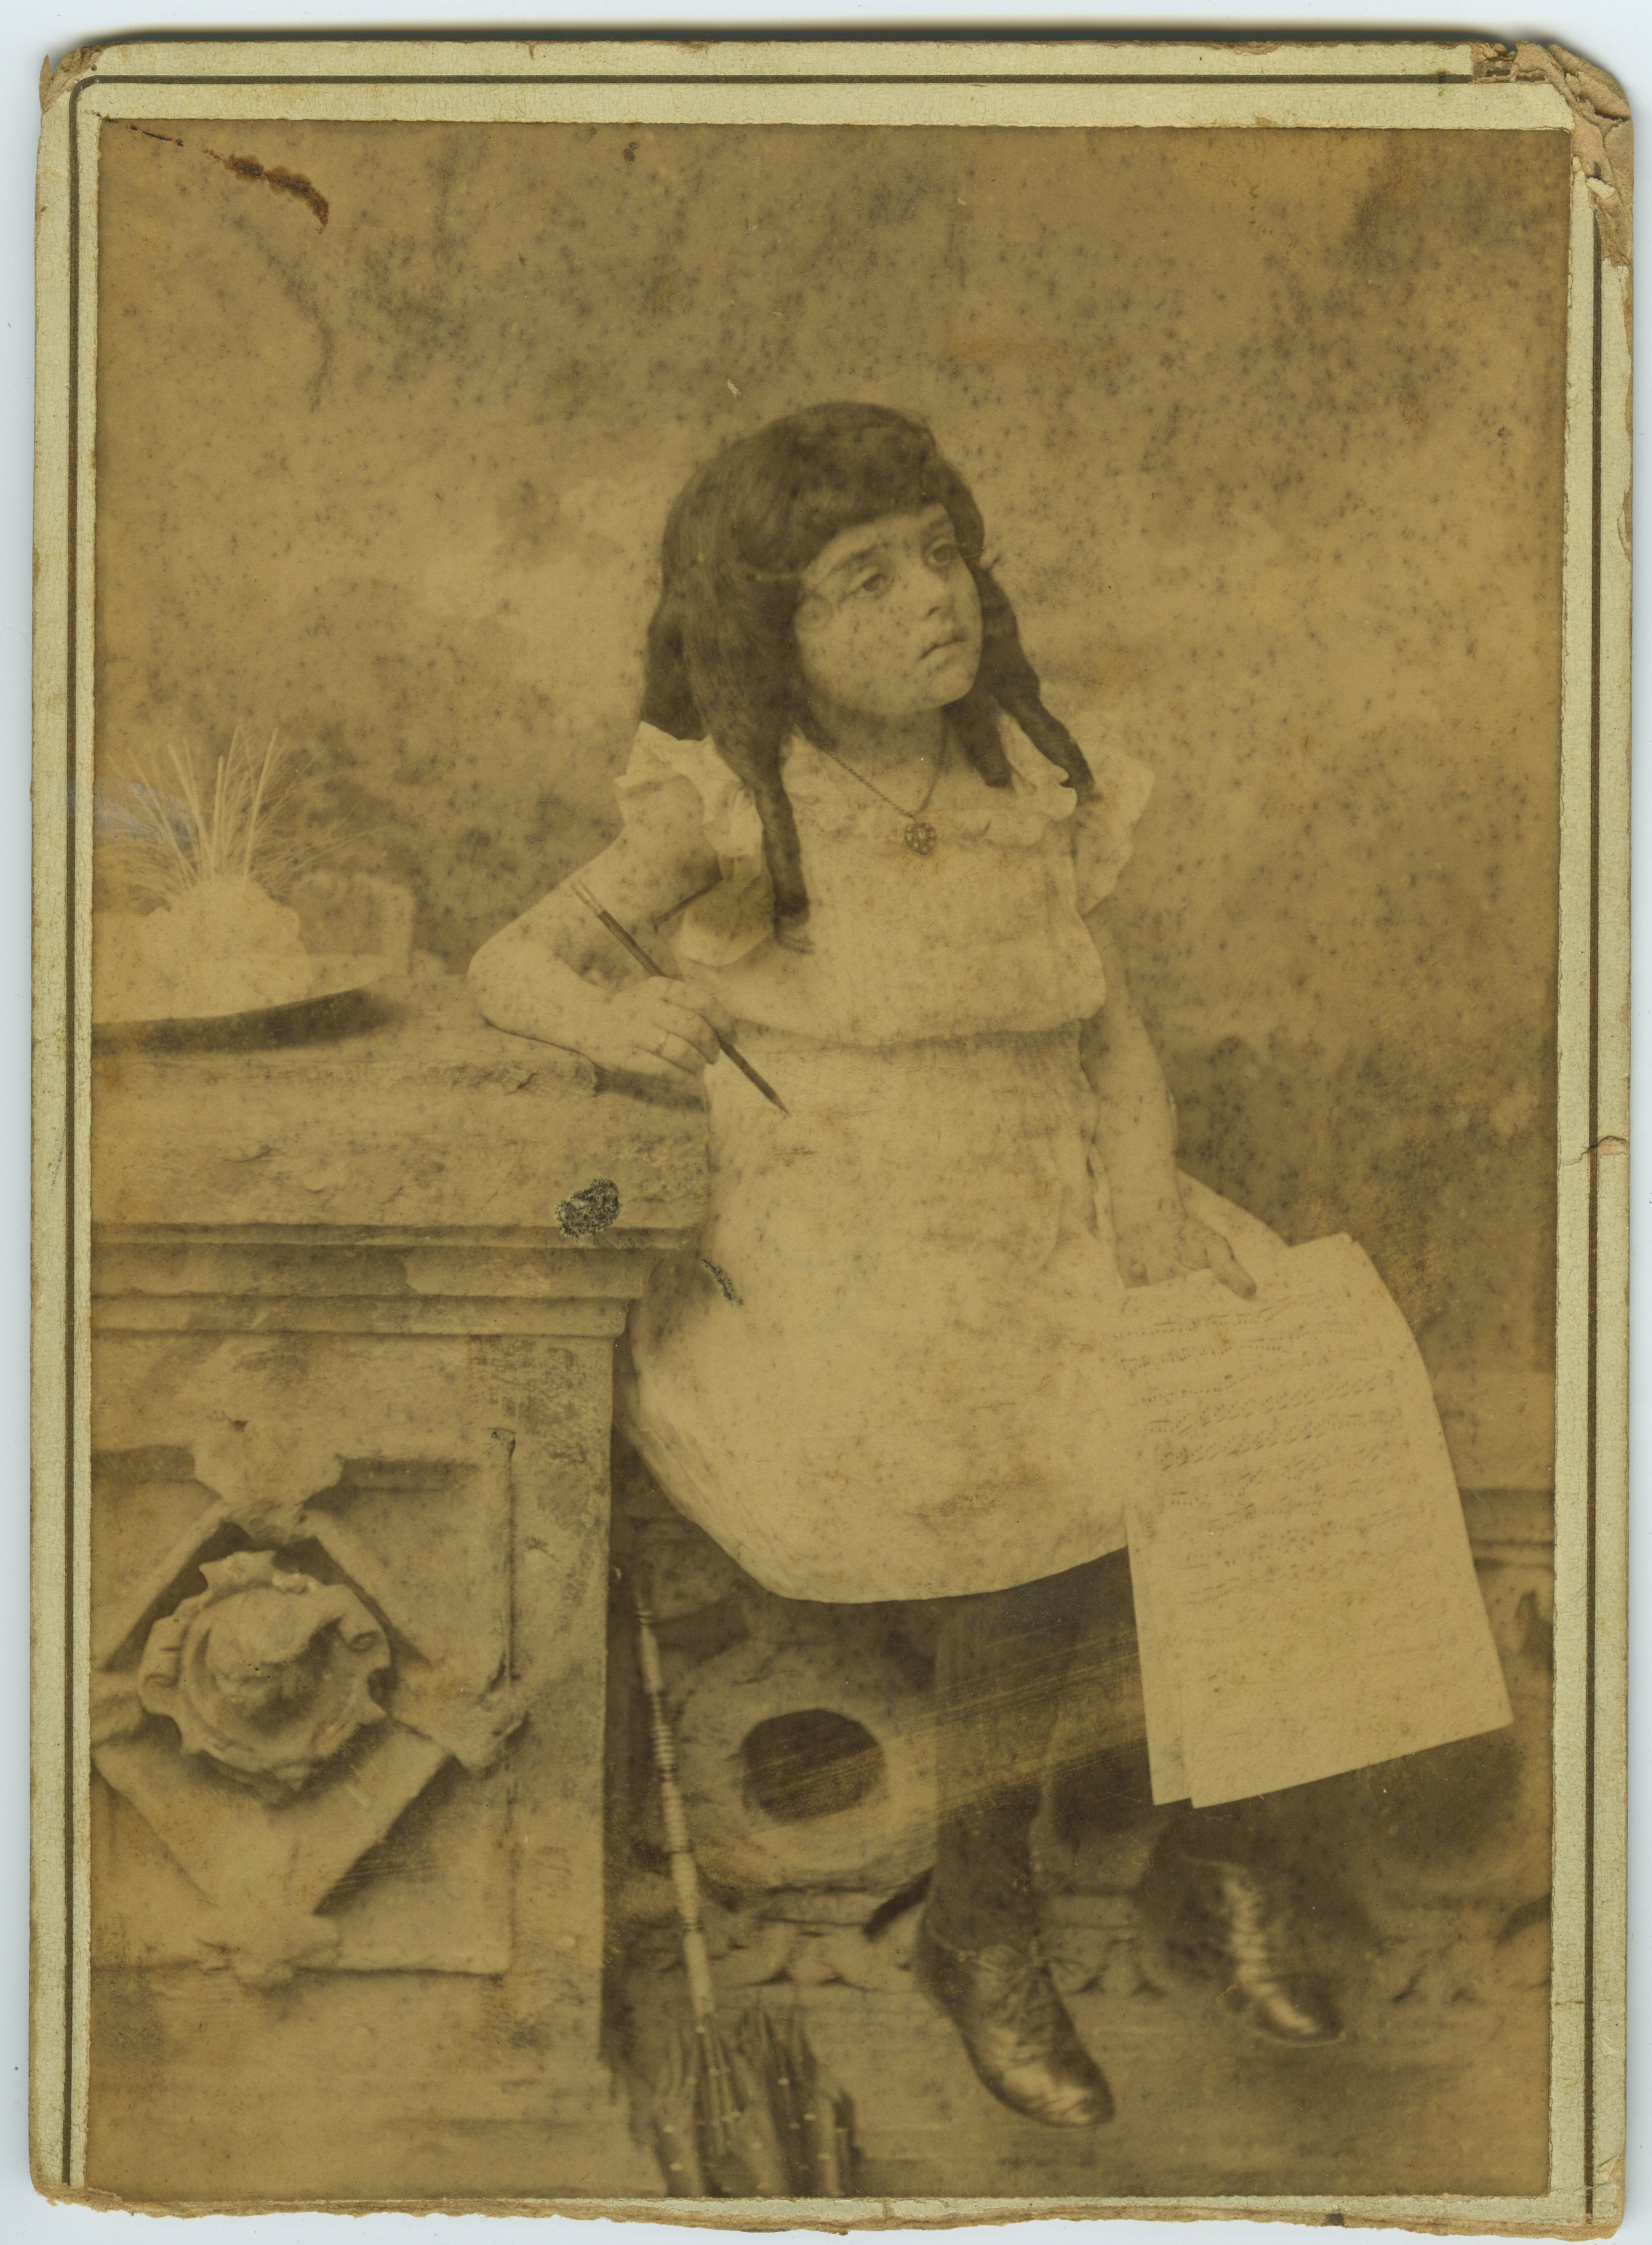 American University Address >> Early Photographs of Mana-Zucca | FIU Special Collections